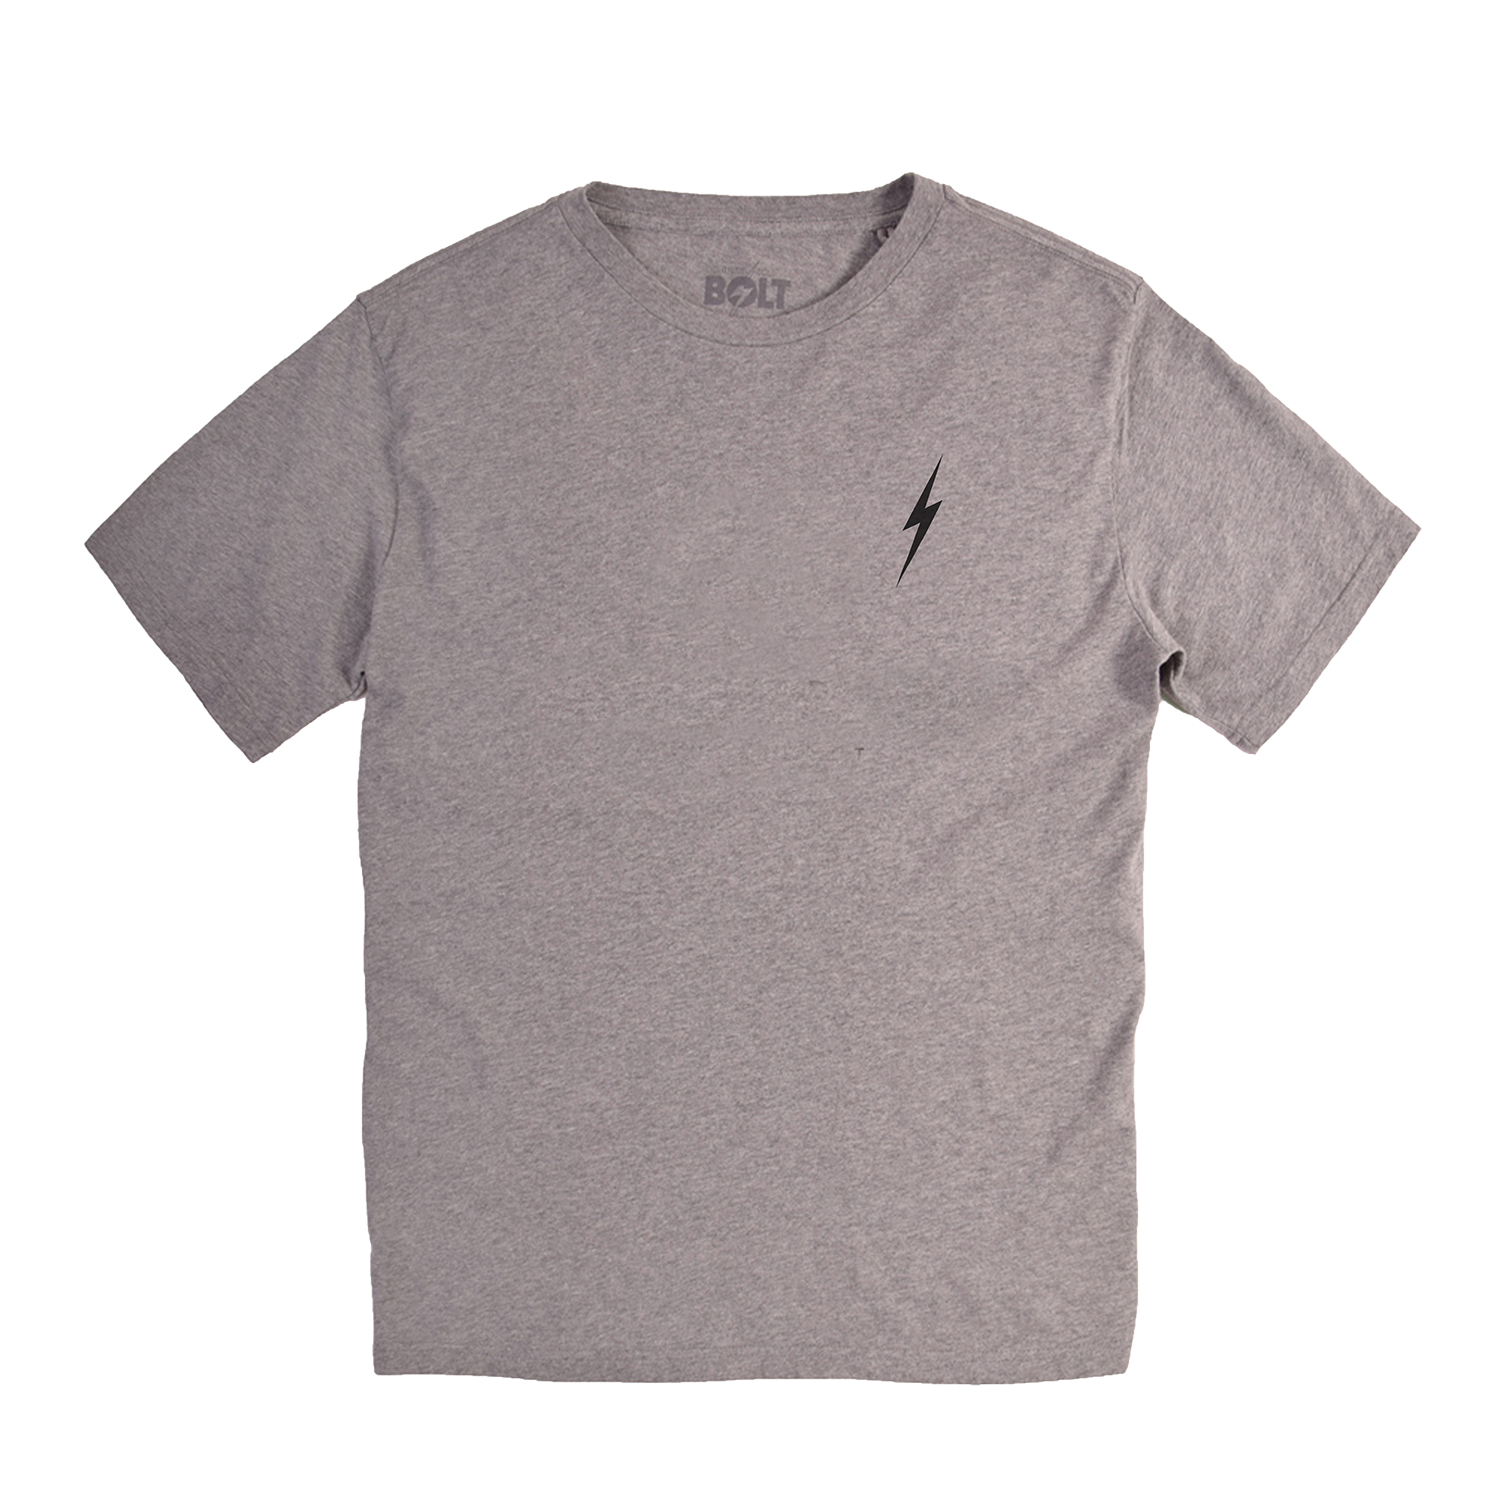 Lightning Bolt Essentials T-shirt - Heather Grey